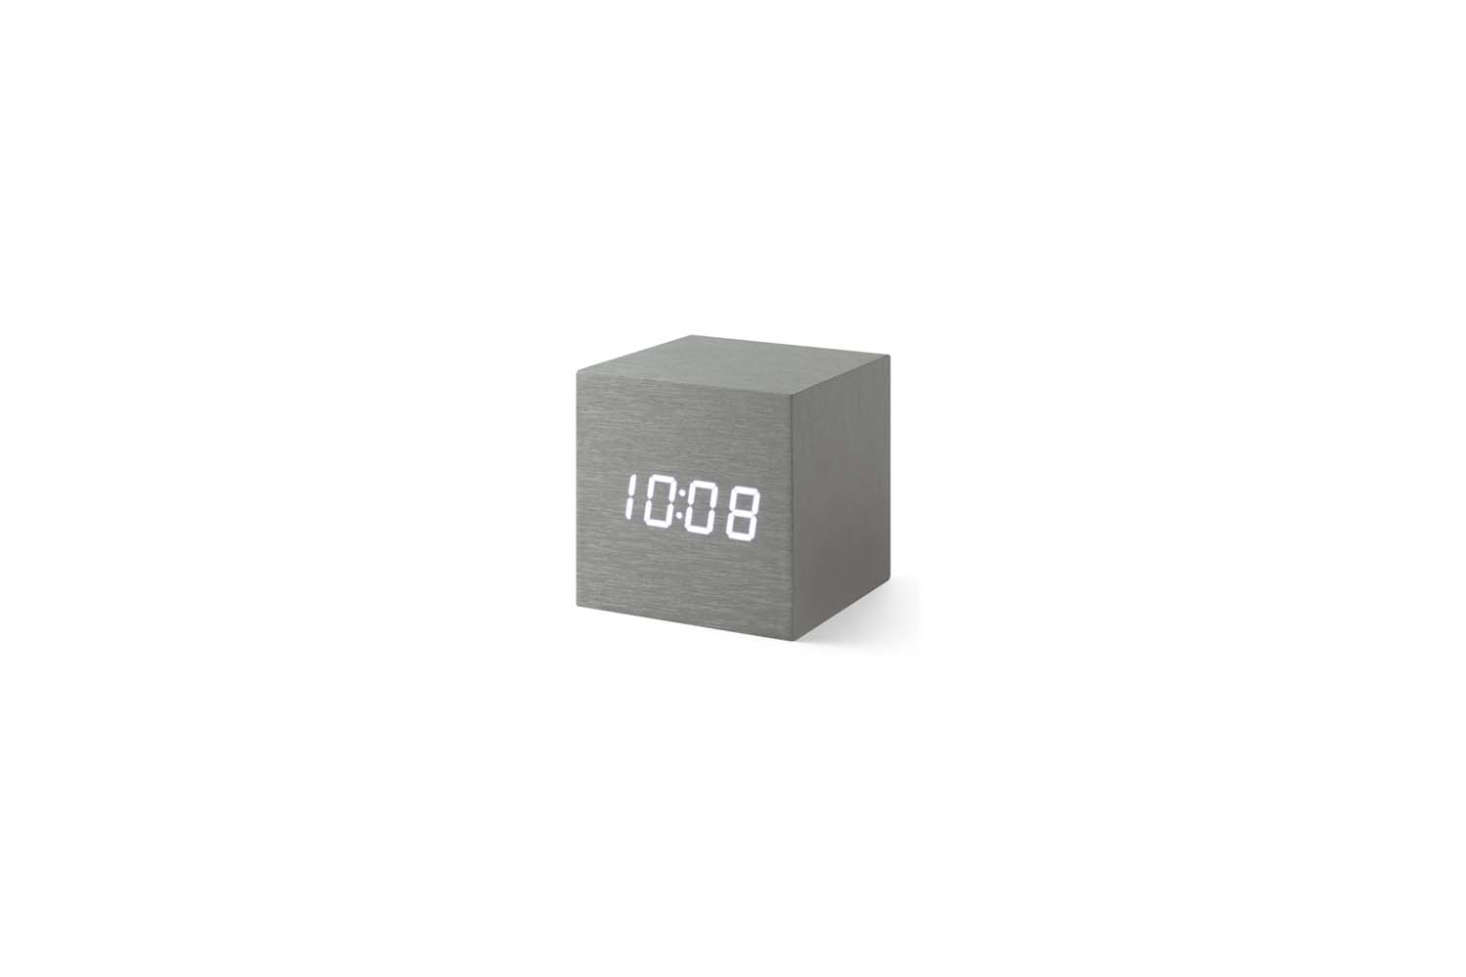 The Alume Cube Clock is encased in wood with an LED screen that illuminates when touched; $48 at the MoMA Design Store.